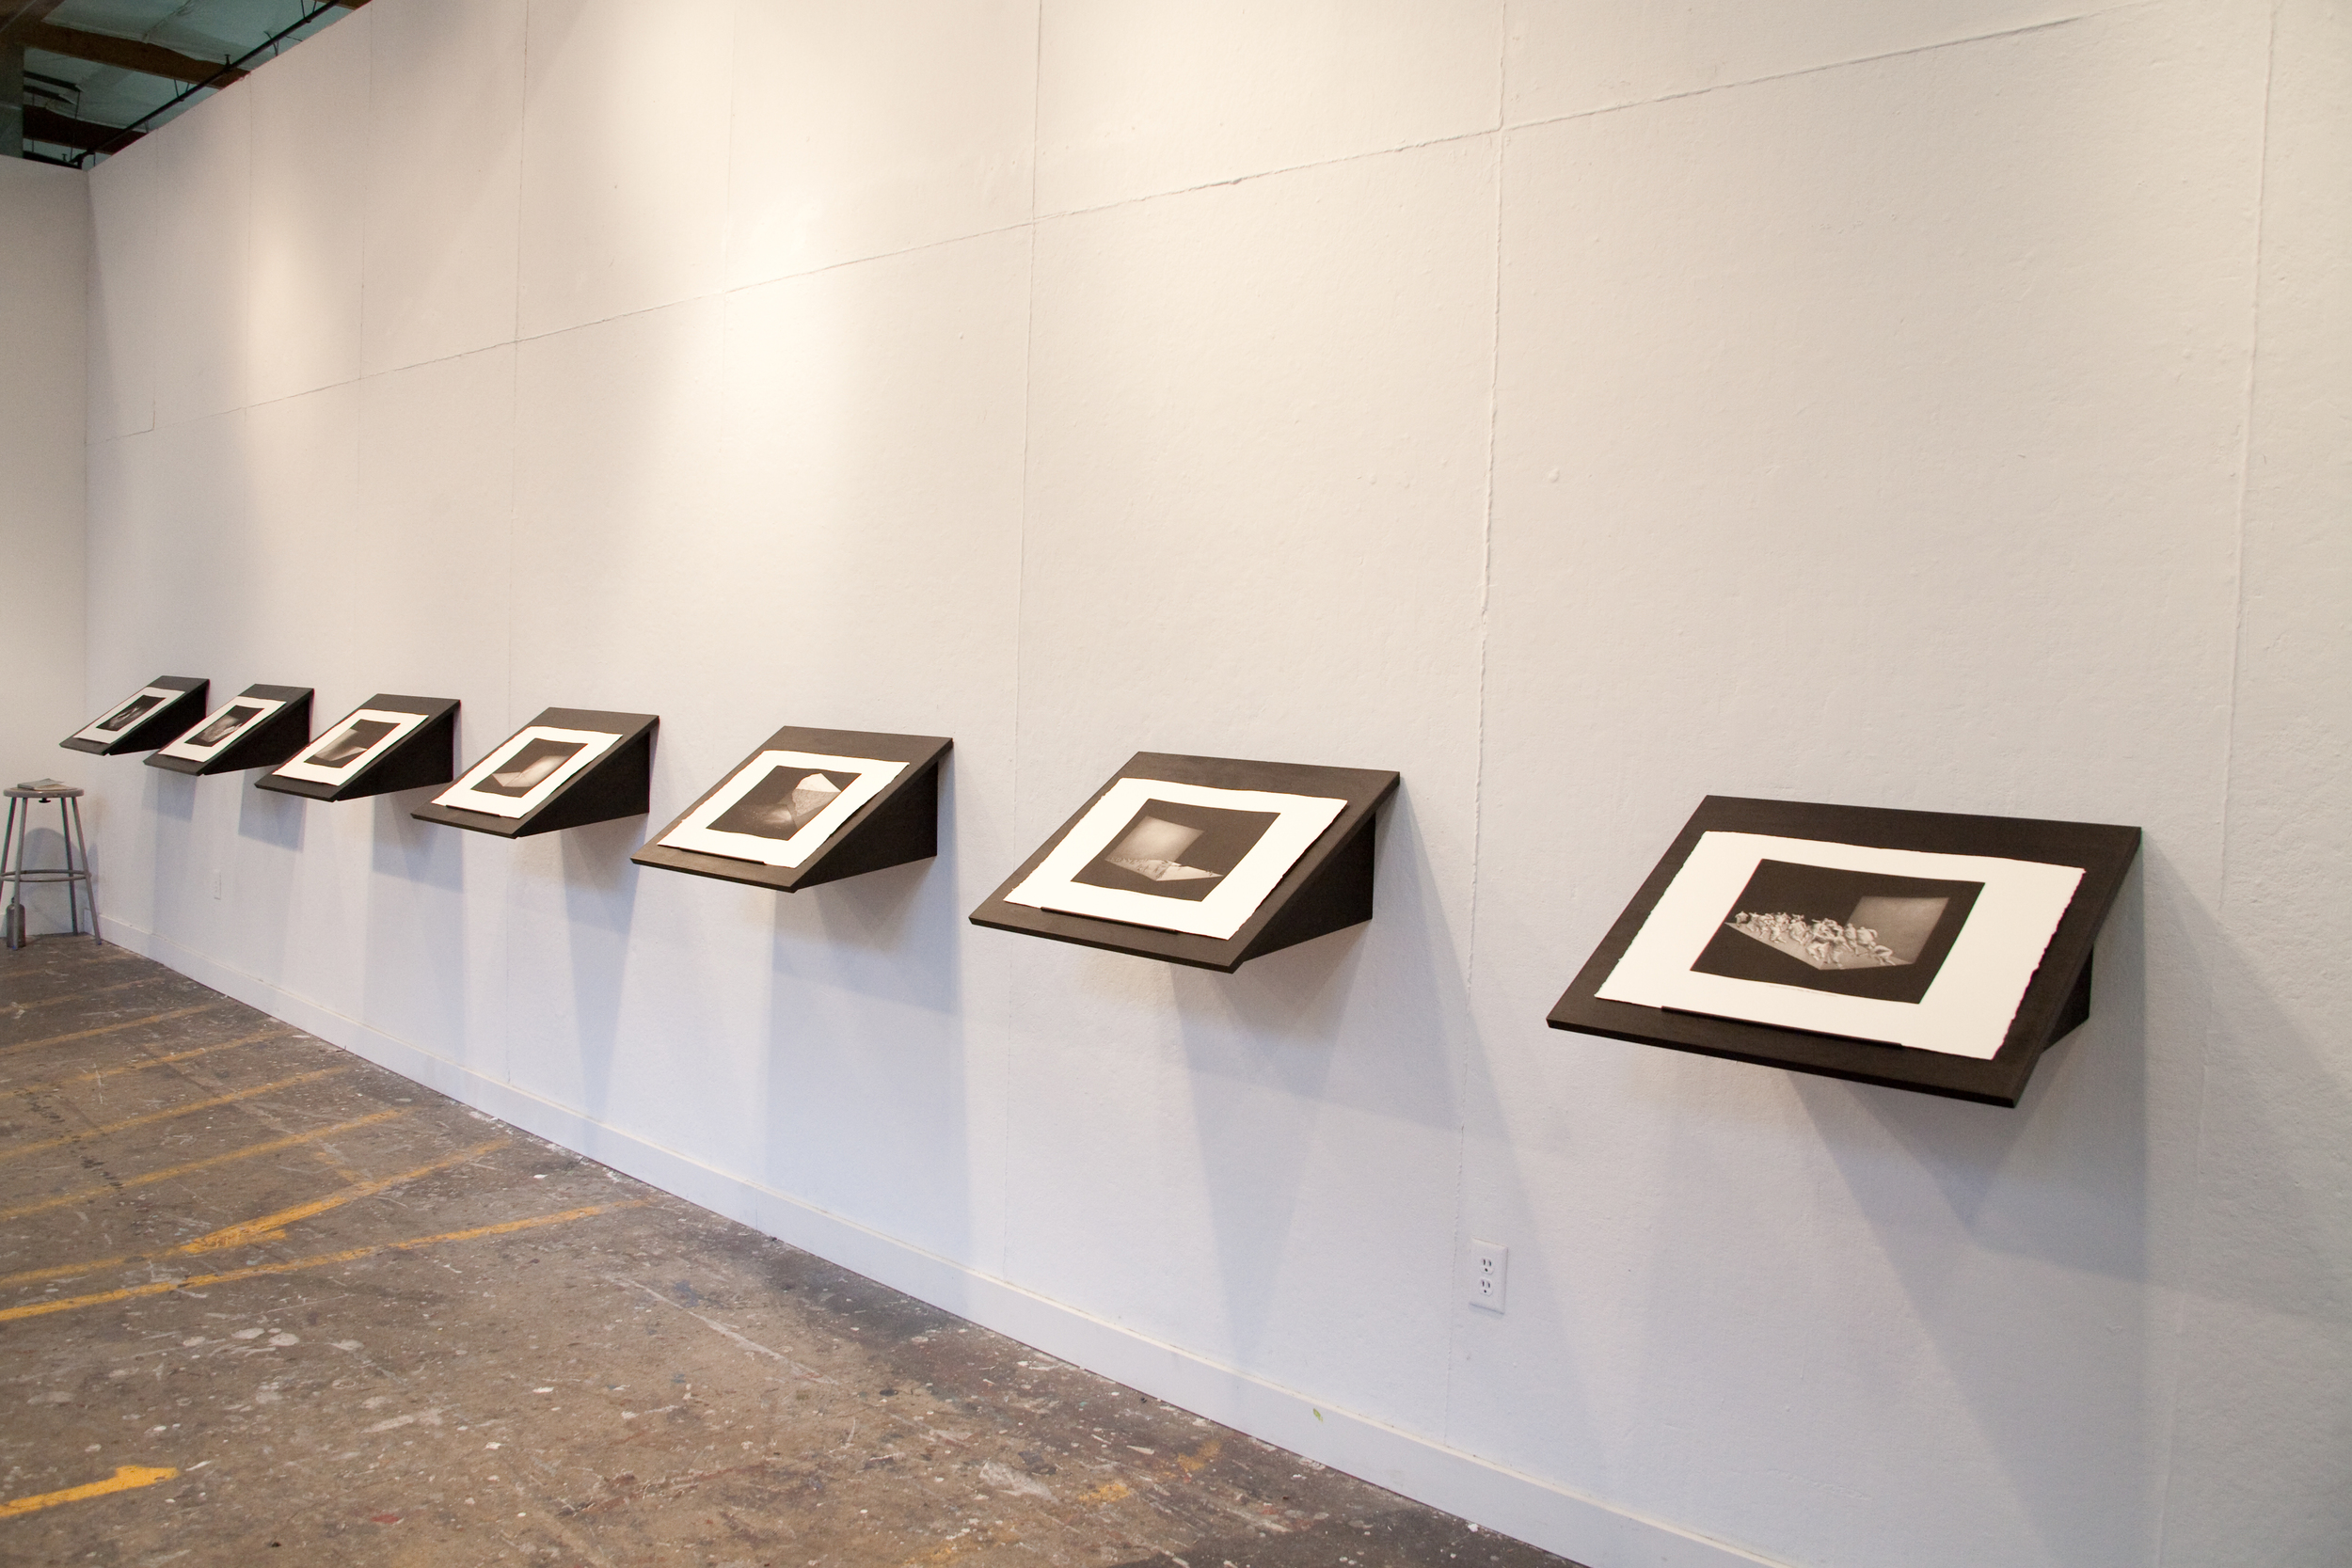 The work installed at Pacific Northwest College of Art, 2010.